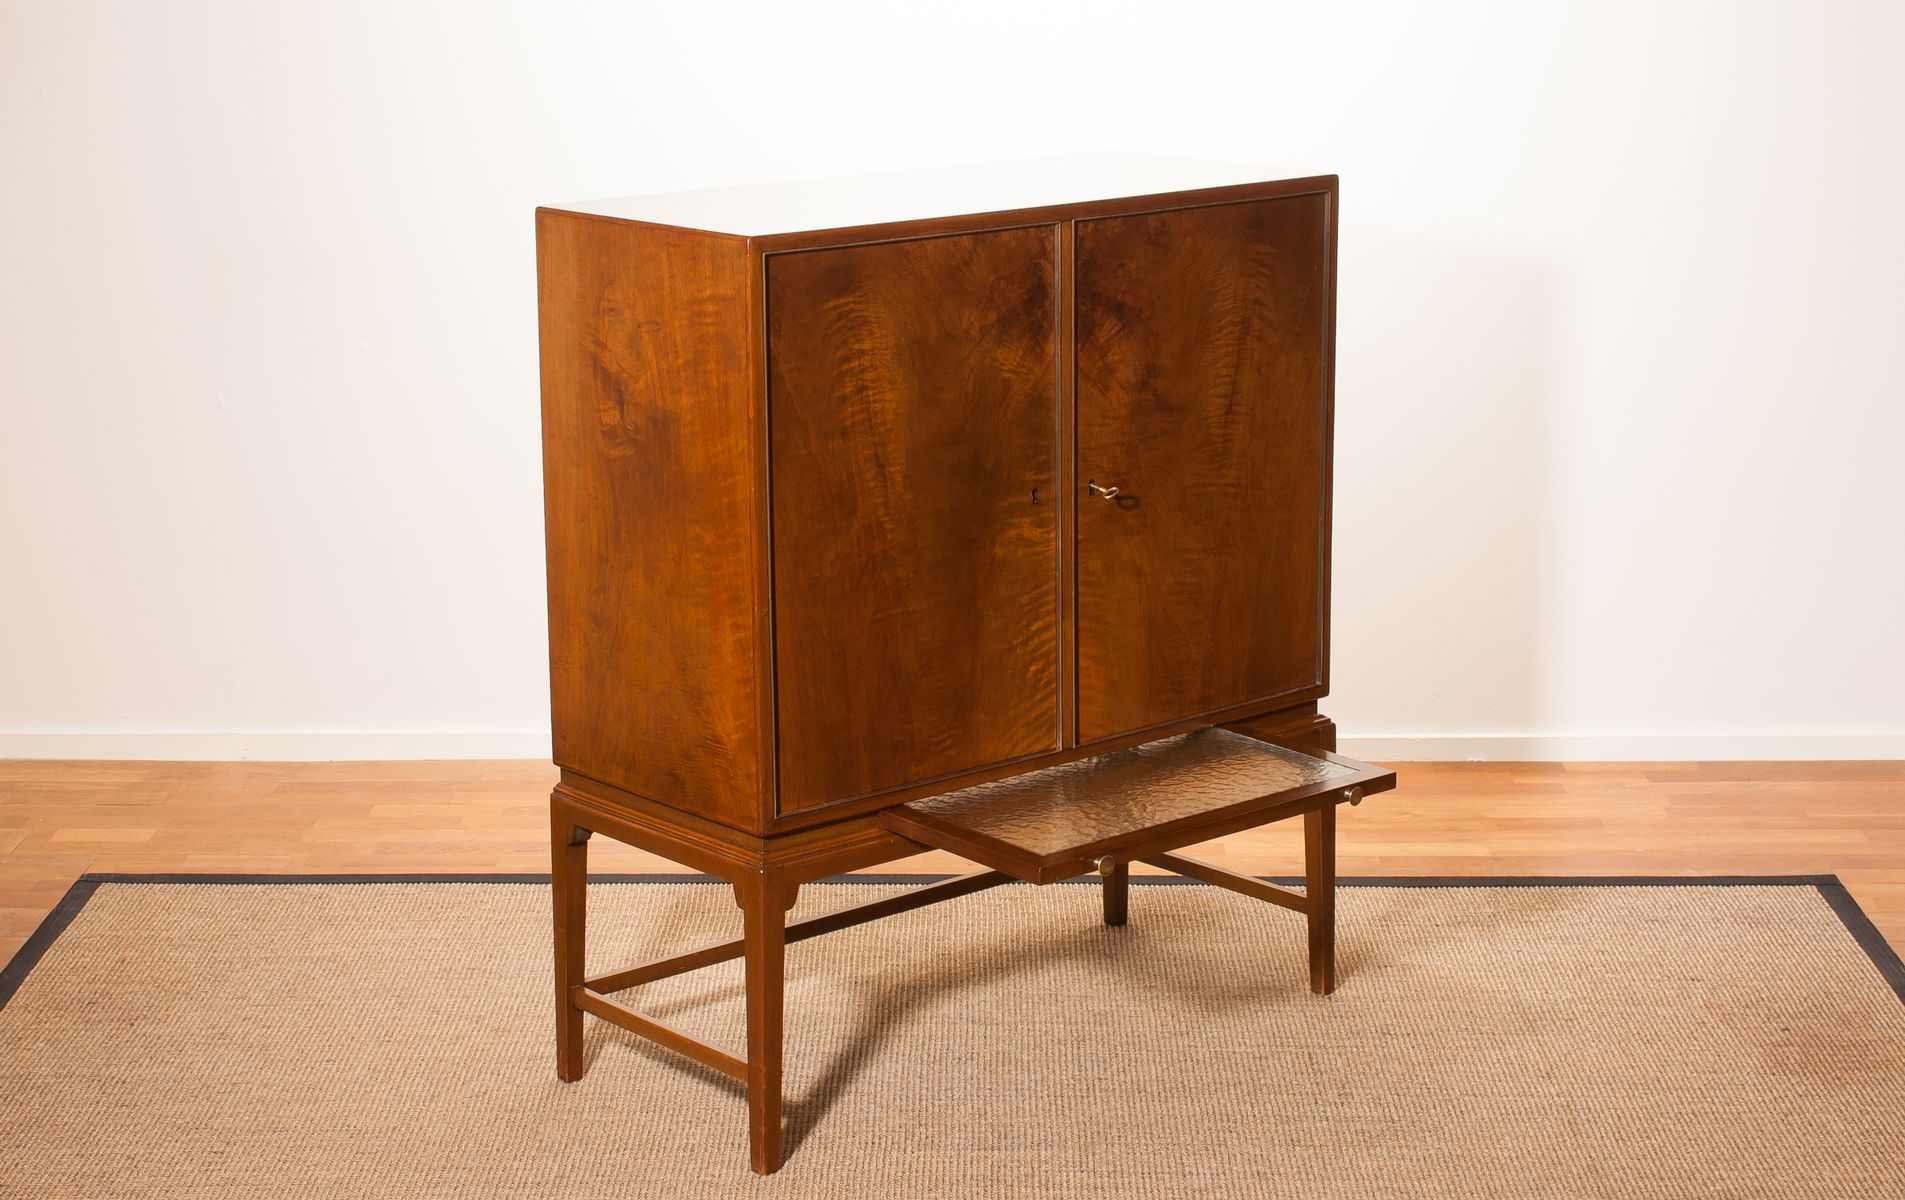 Burl wood cabinet from boet 1950s for sale at pamono for Burl wood kitchen cabinets